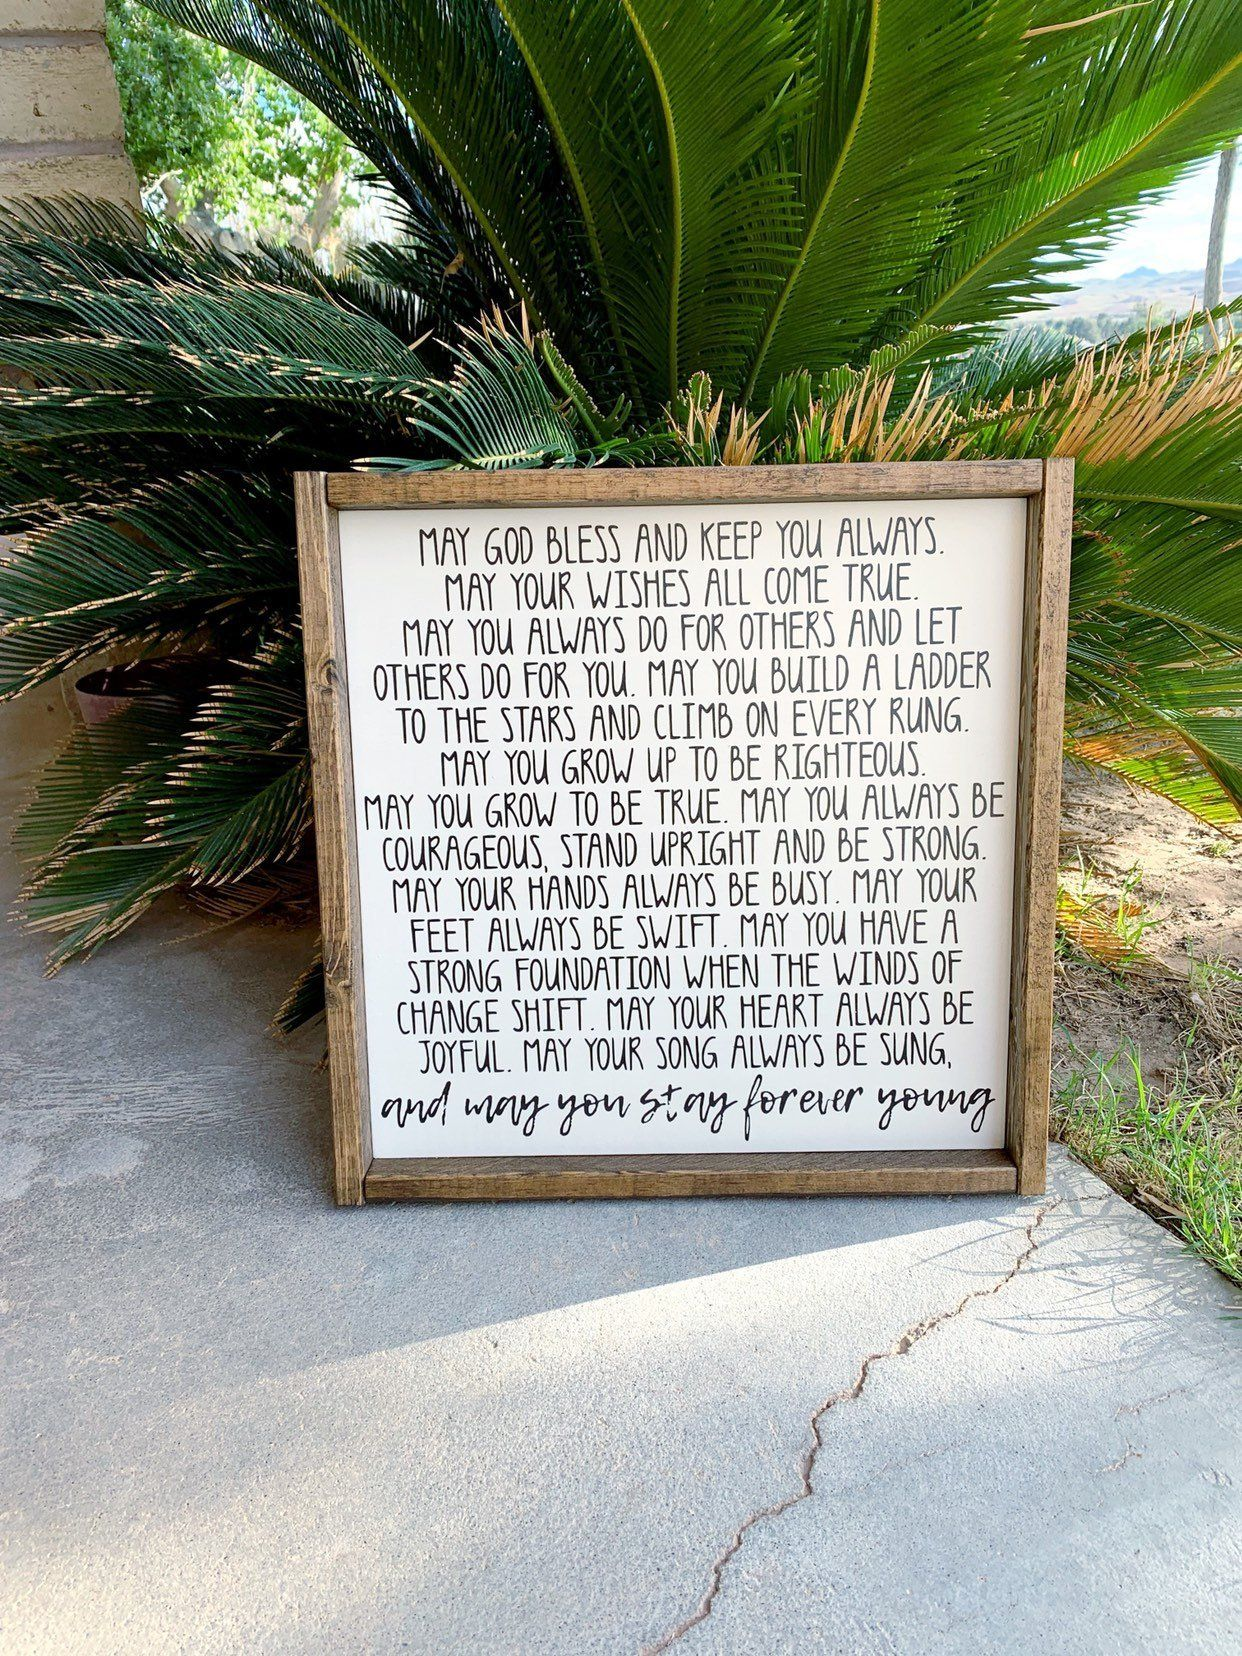 May You Stay Forever Young Framed Wood Sign Stay Forever Young